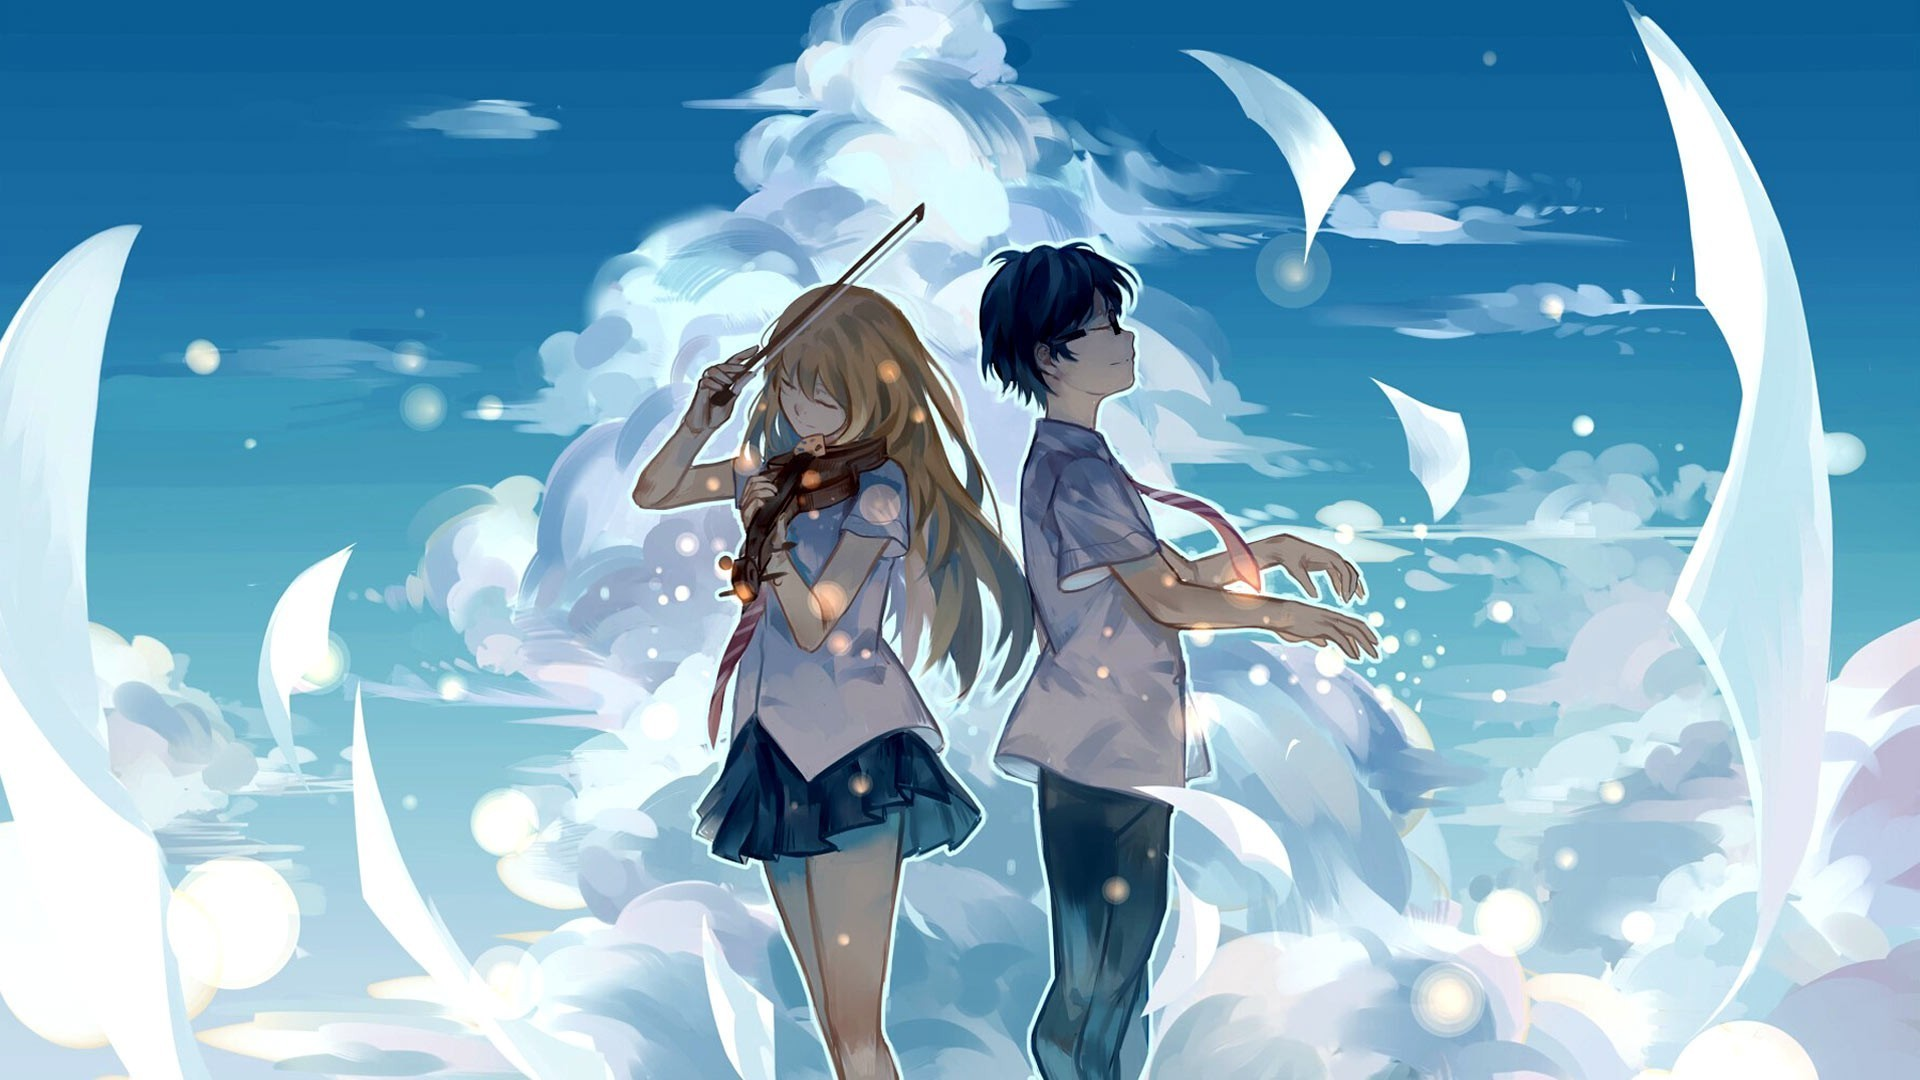 Res: 1920x1080,  Anime Love Couple Wallpapers. 0 · Download · Res: 3840x2160 ...